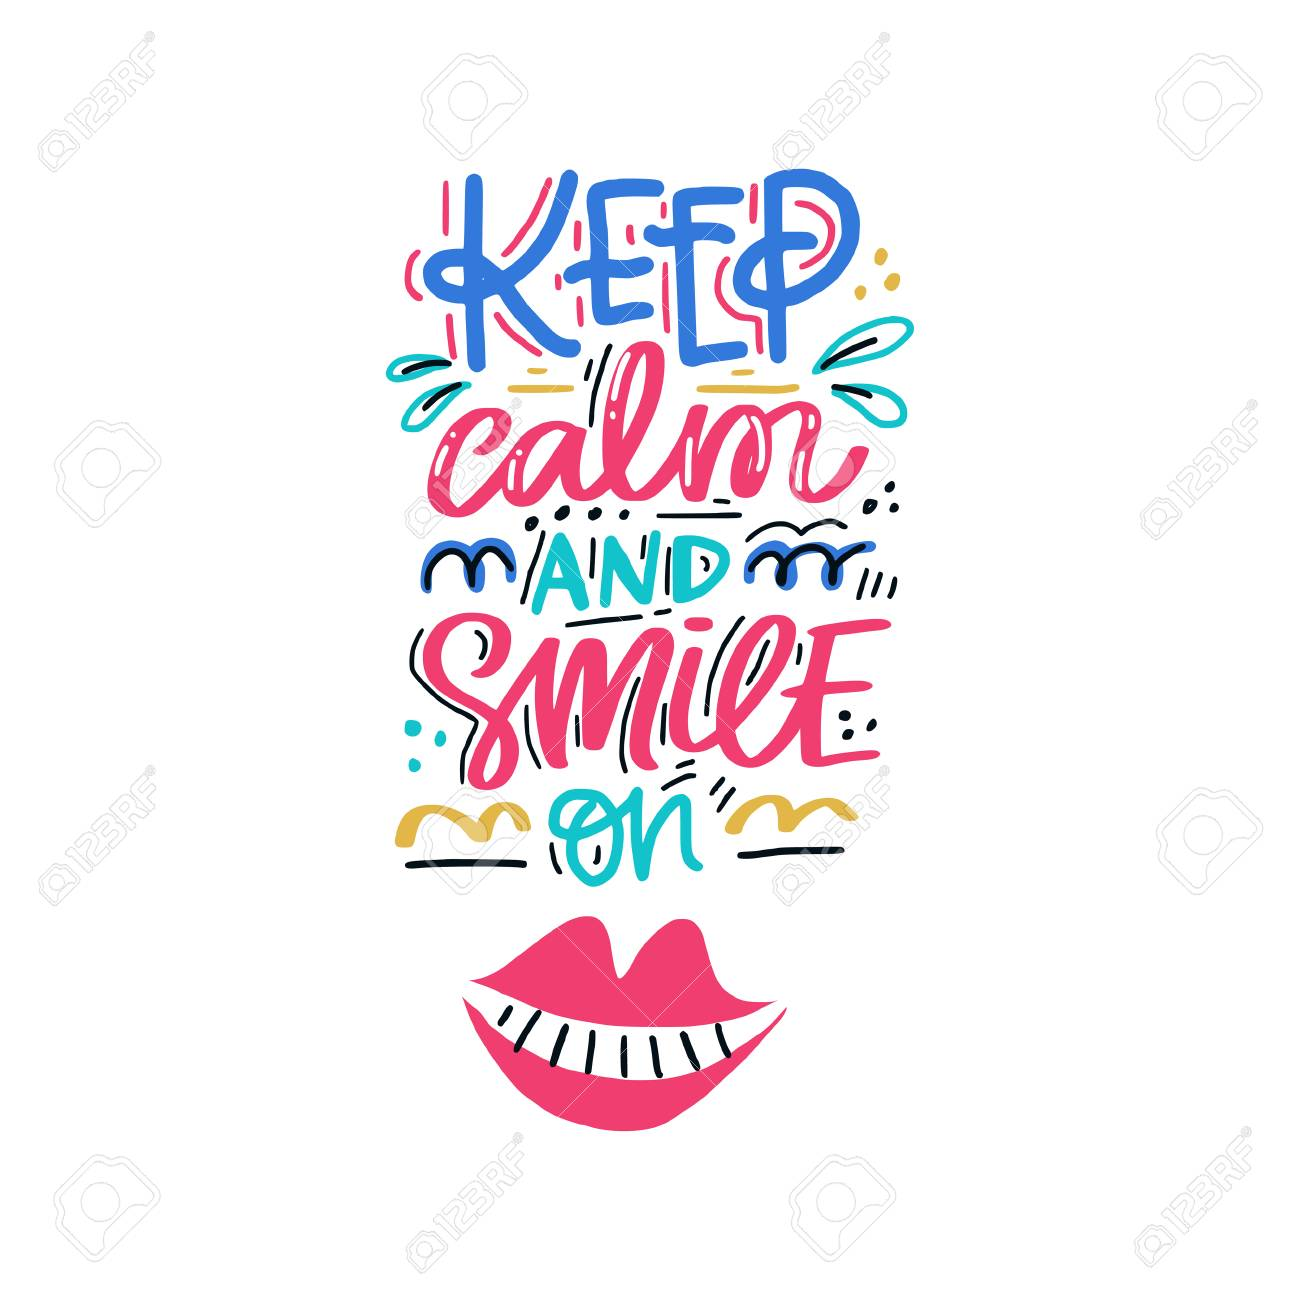 Keep calm and smile on. Hand drawn lettering with dental care quote. Typography design for medical cabinet. - 101685086